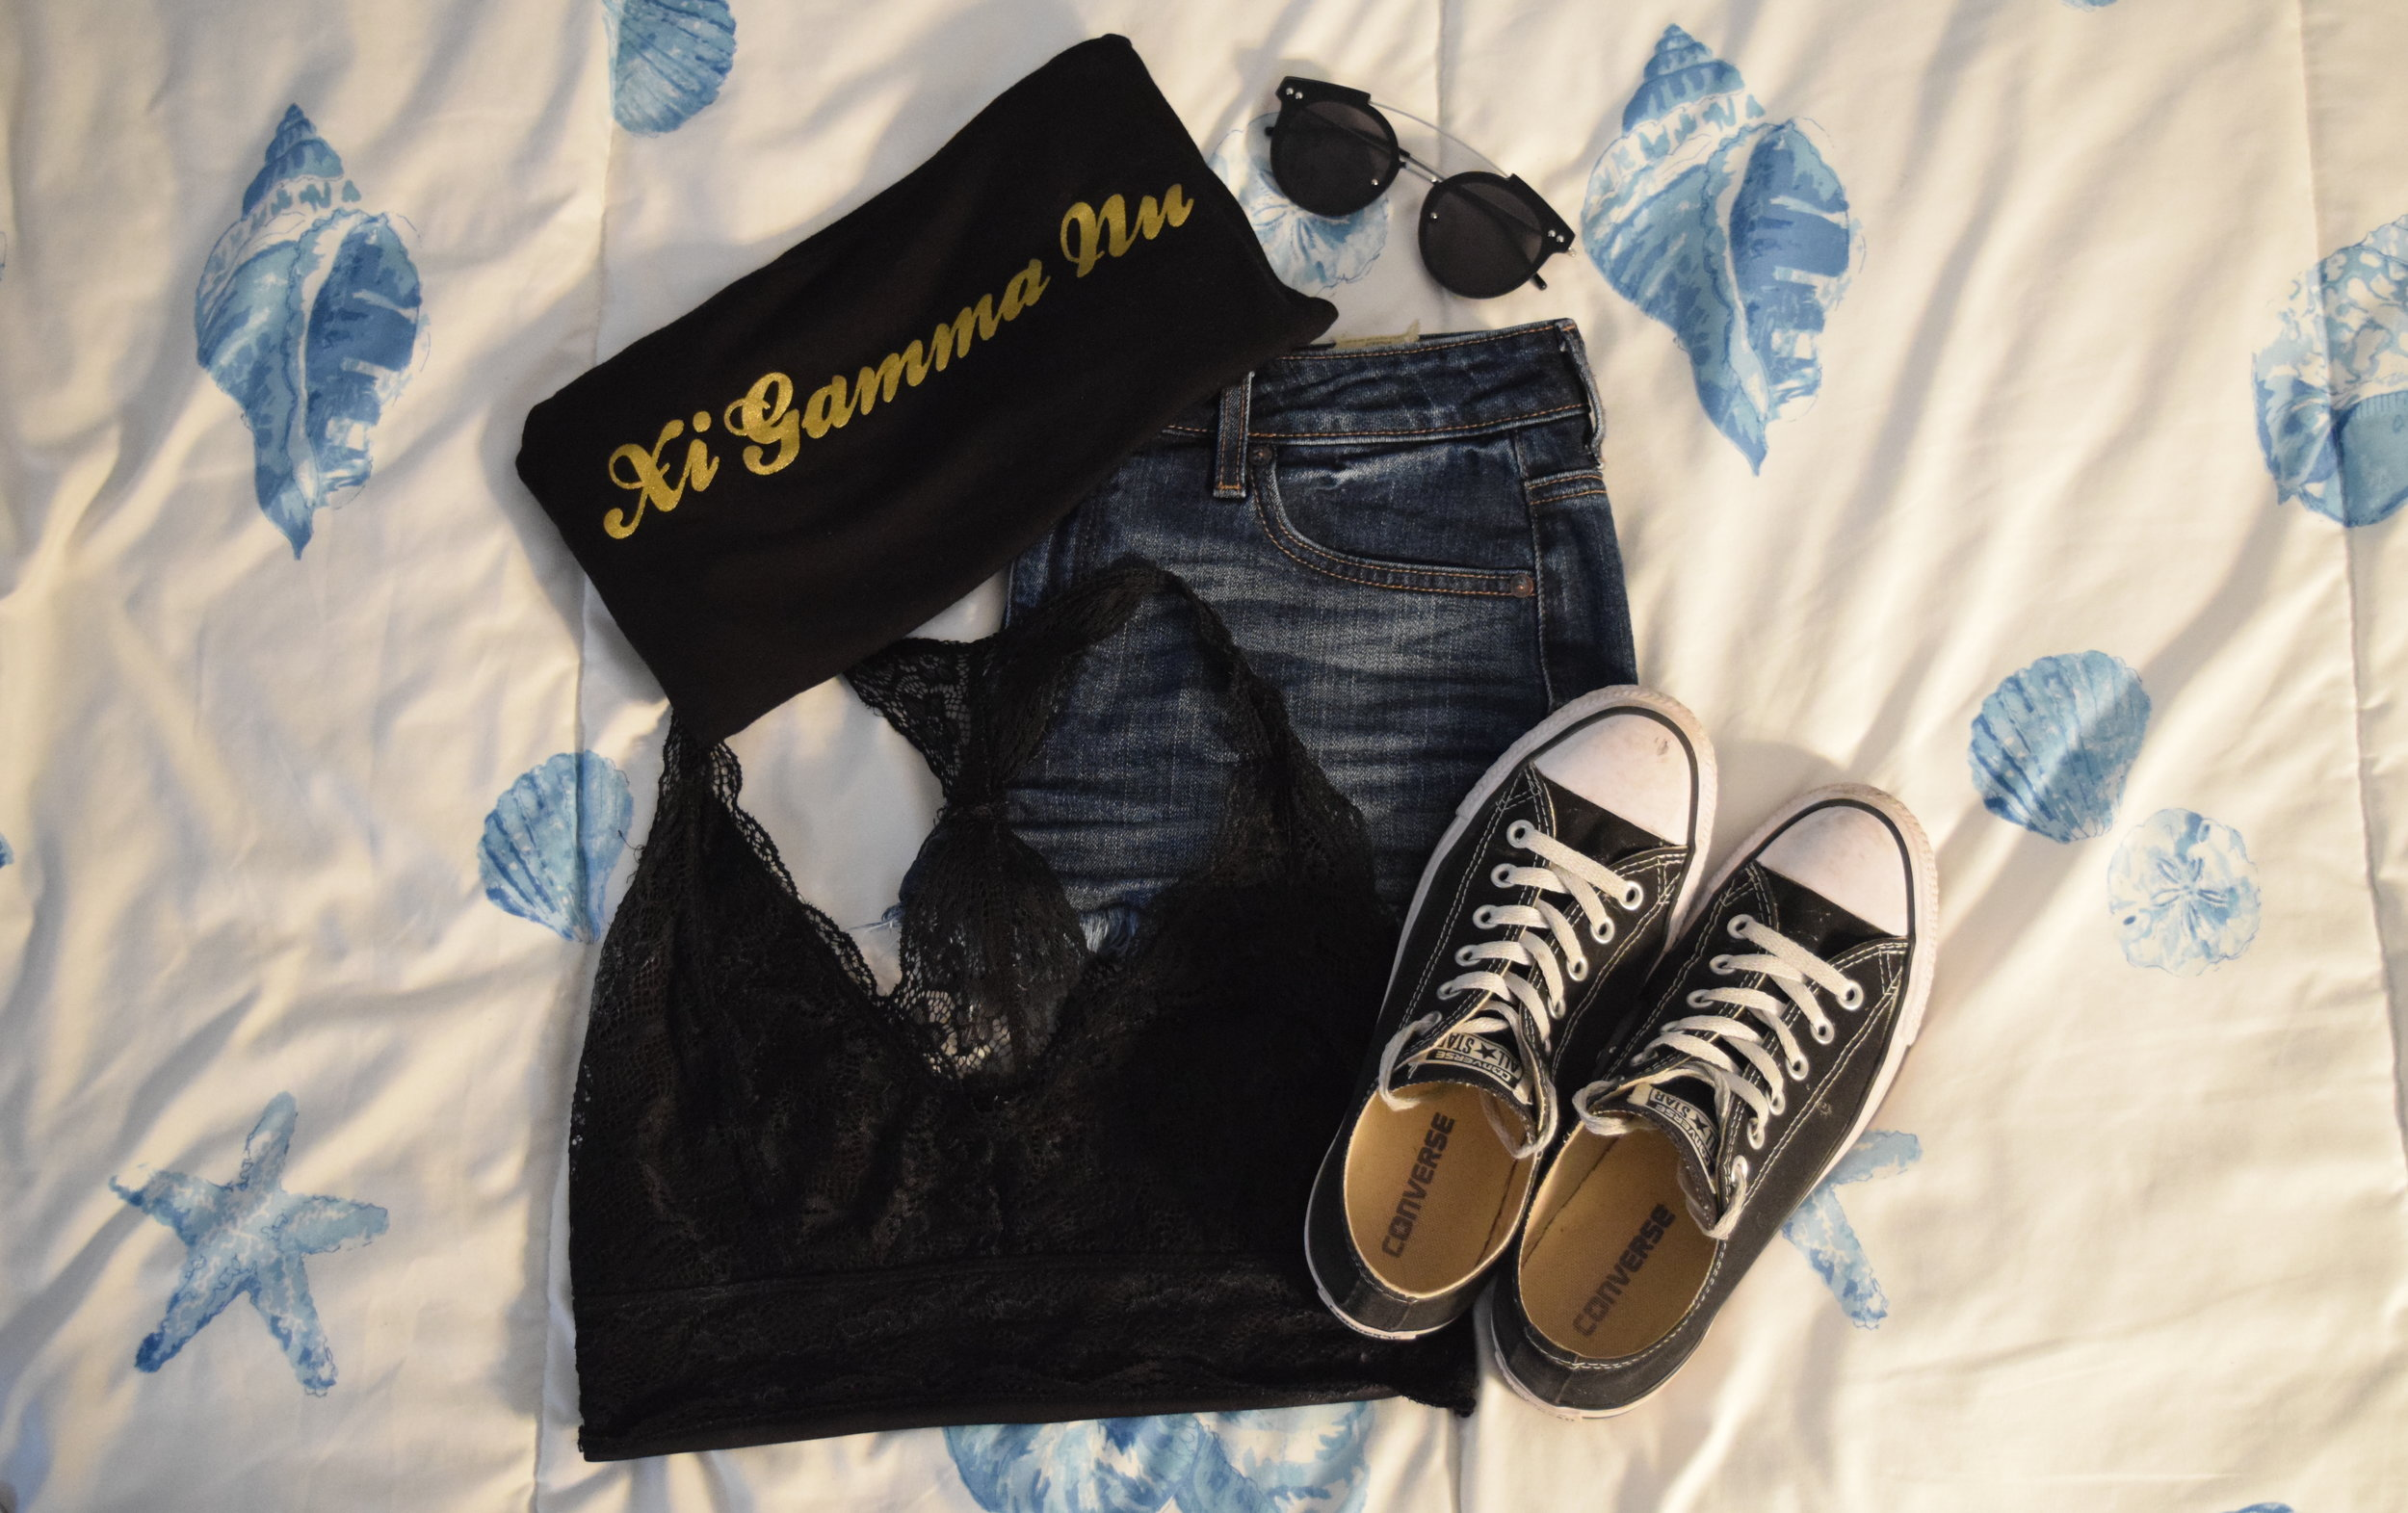 Shirt (Gamma exclusive bbs).  Shorts .  Bralette .  Converse .  Sunglasses .